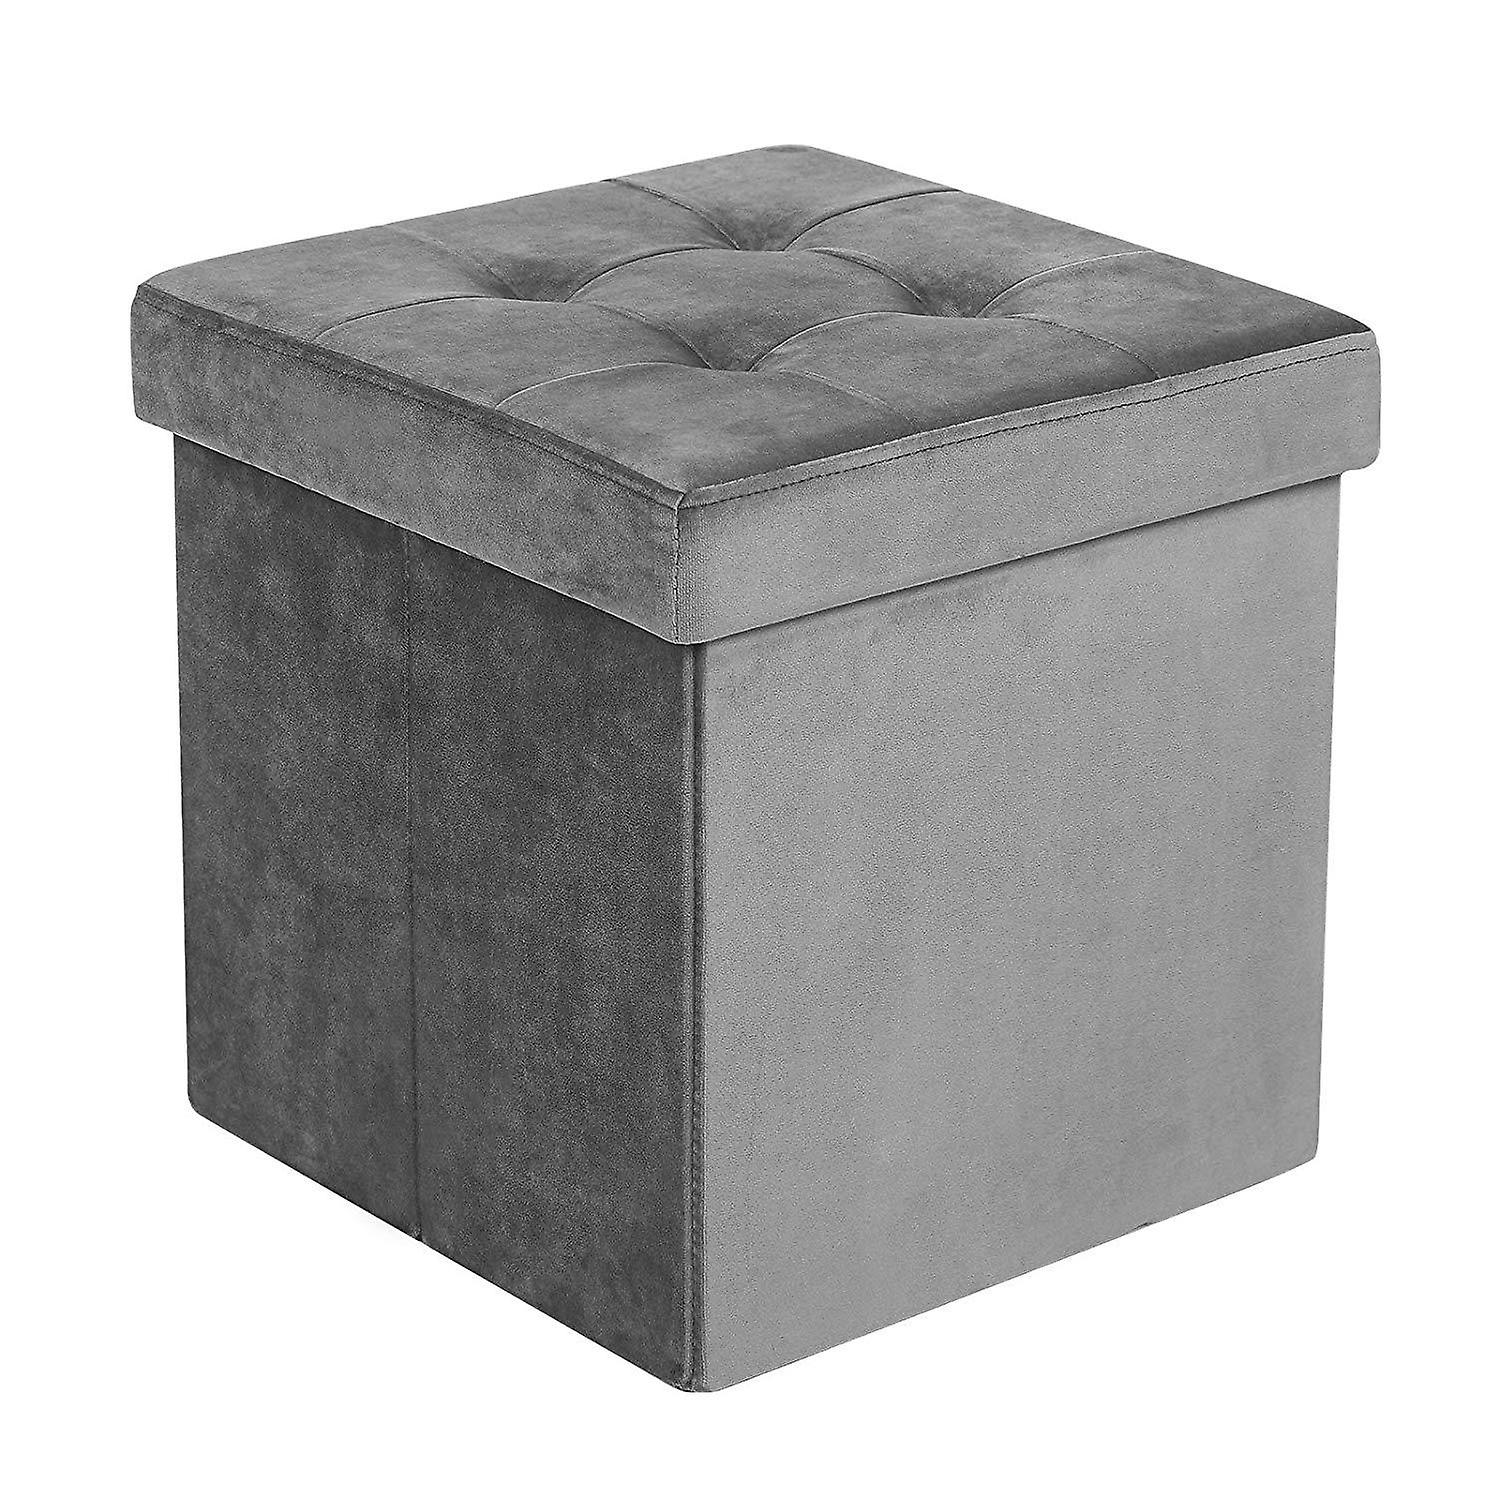 Grey Velvet Pouf with storage space